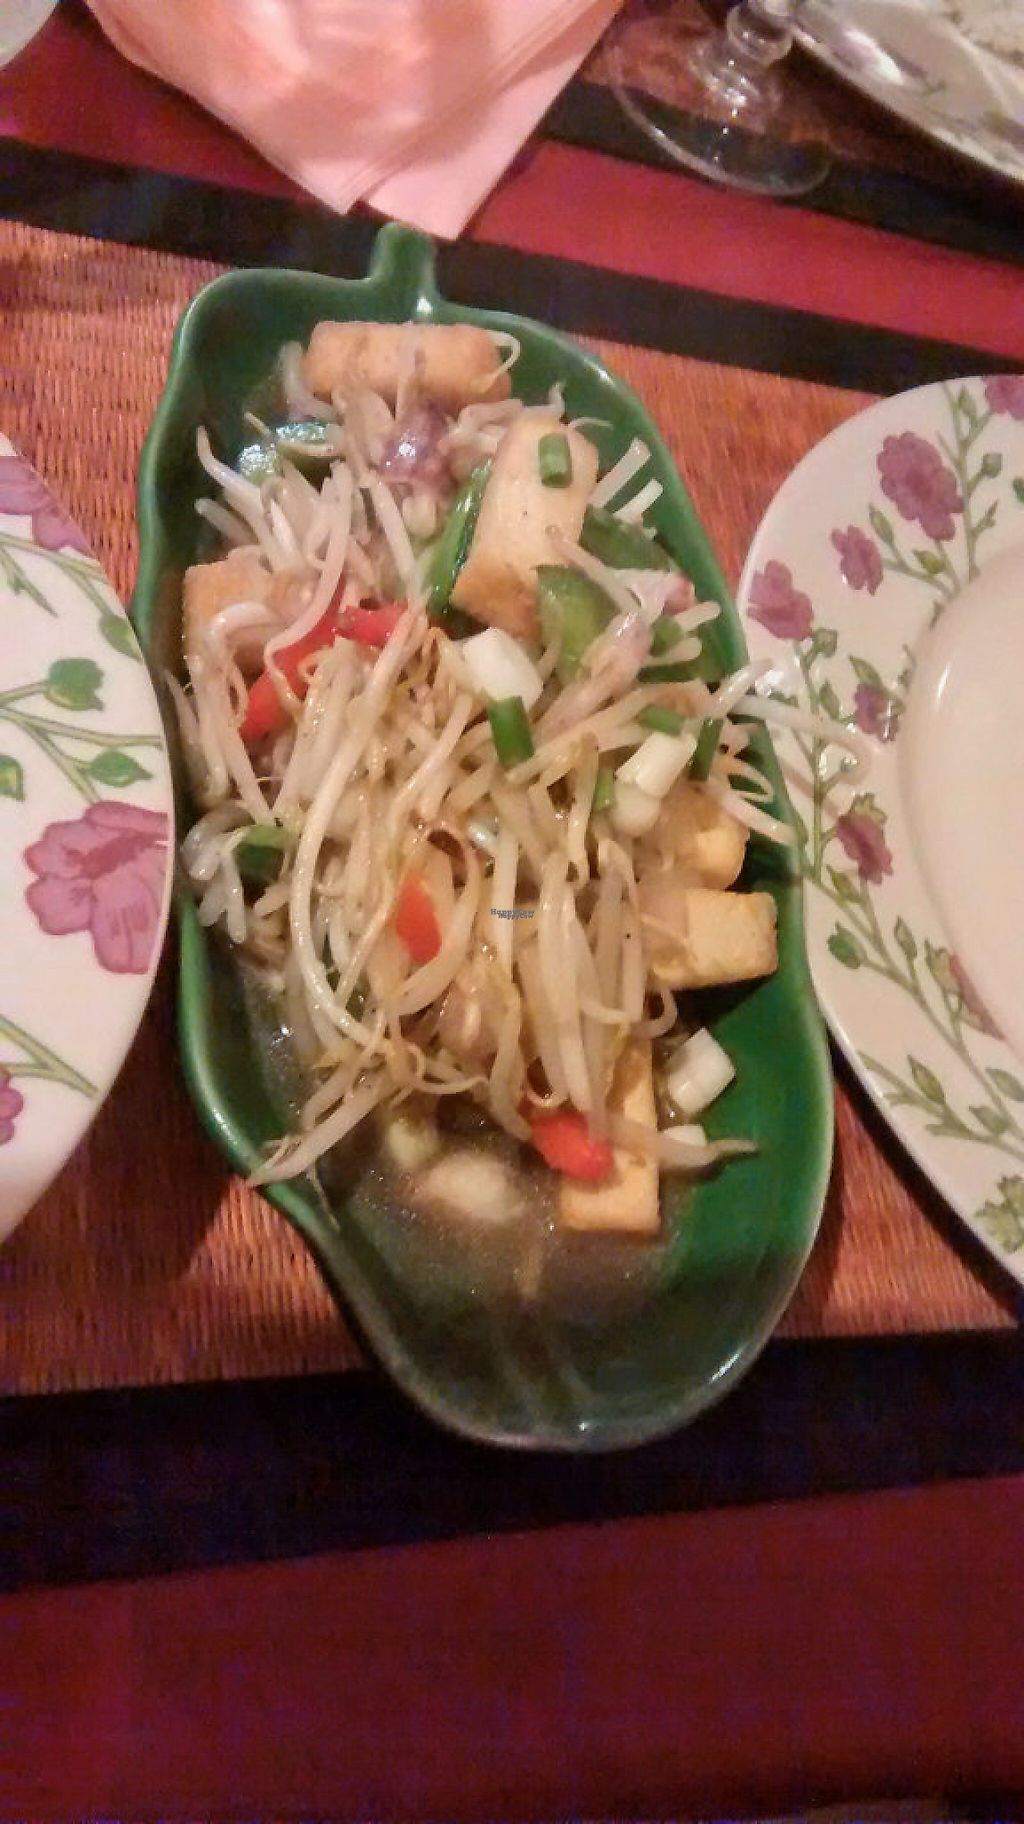 """Photo of Baan Siam  by <a href=""""/members/profile/JonJon"""">JonJon</a> <br/>Fried vegetables <br/> December 2, 2016  - <a href='/contact/abuse/image/46579/196721'>Report</a>"""